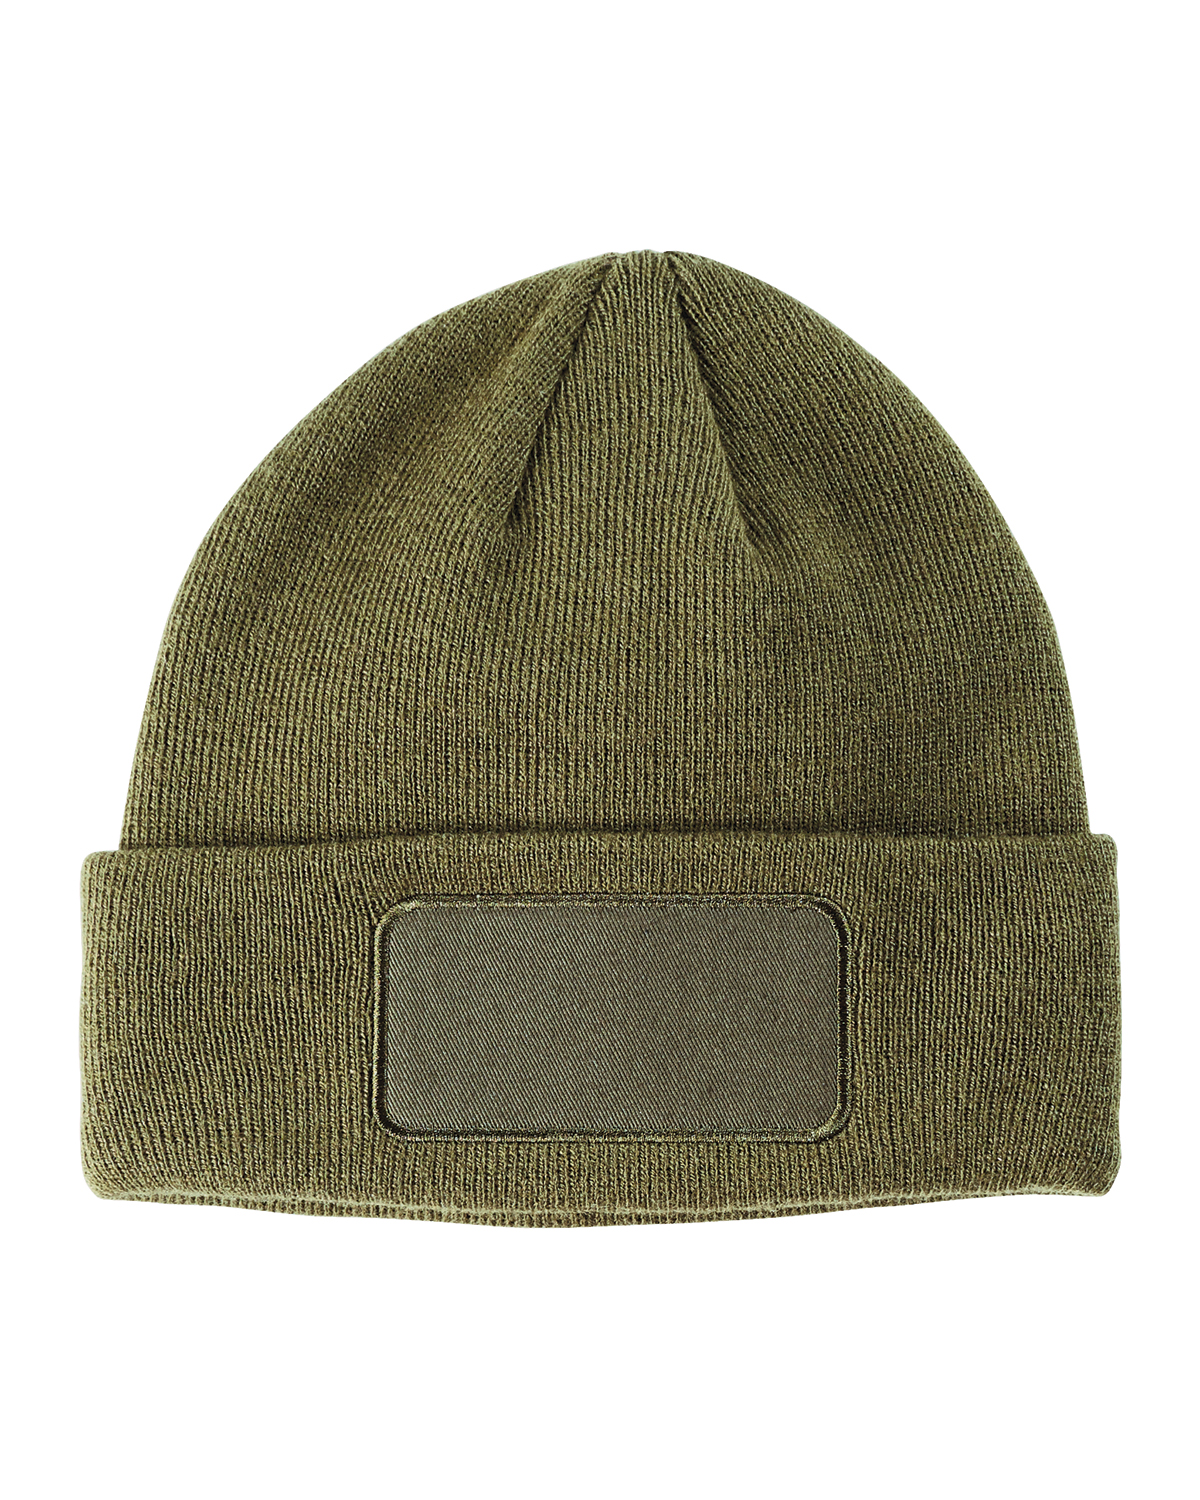 BA527- Big Accessories Patch Beanie